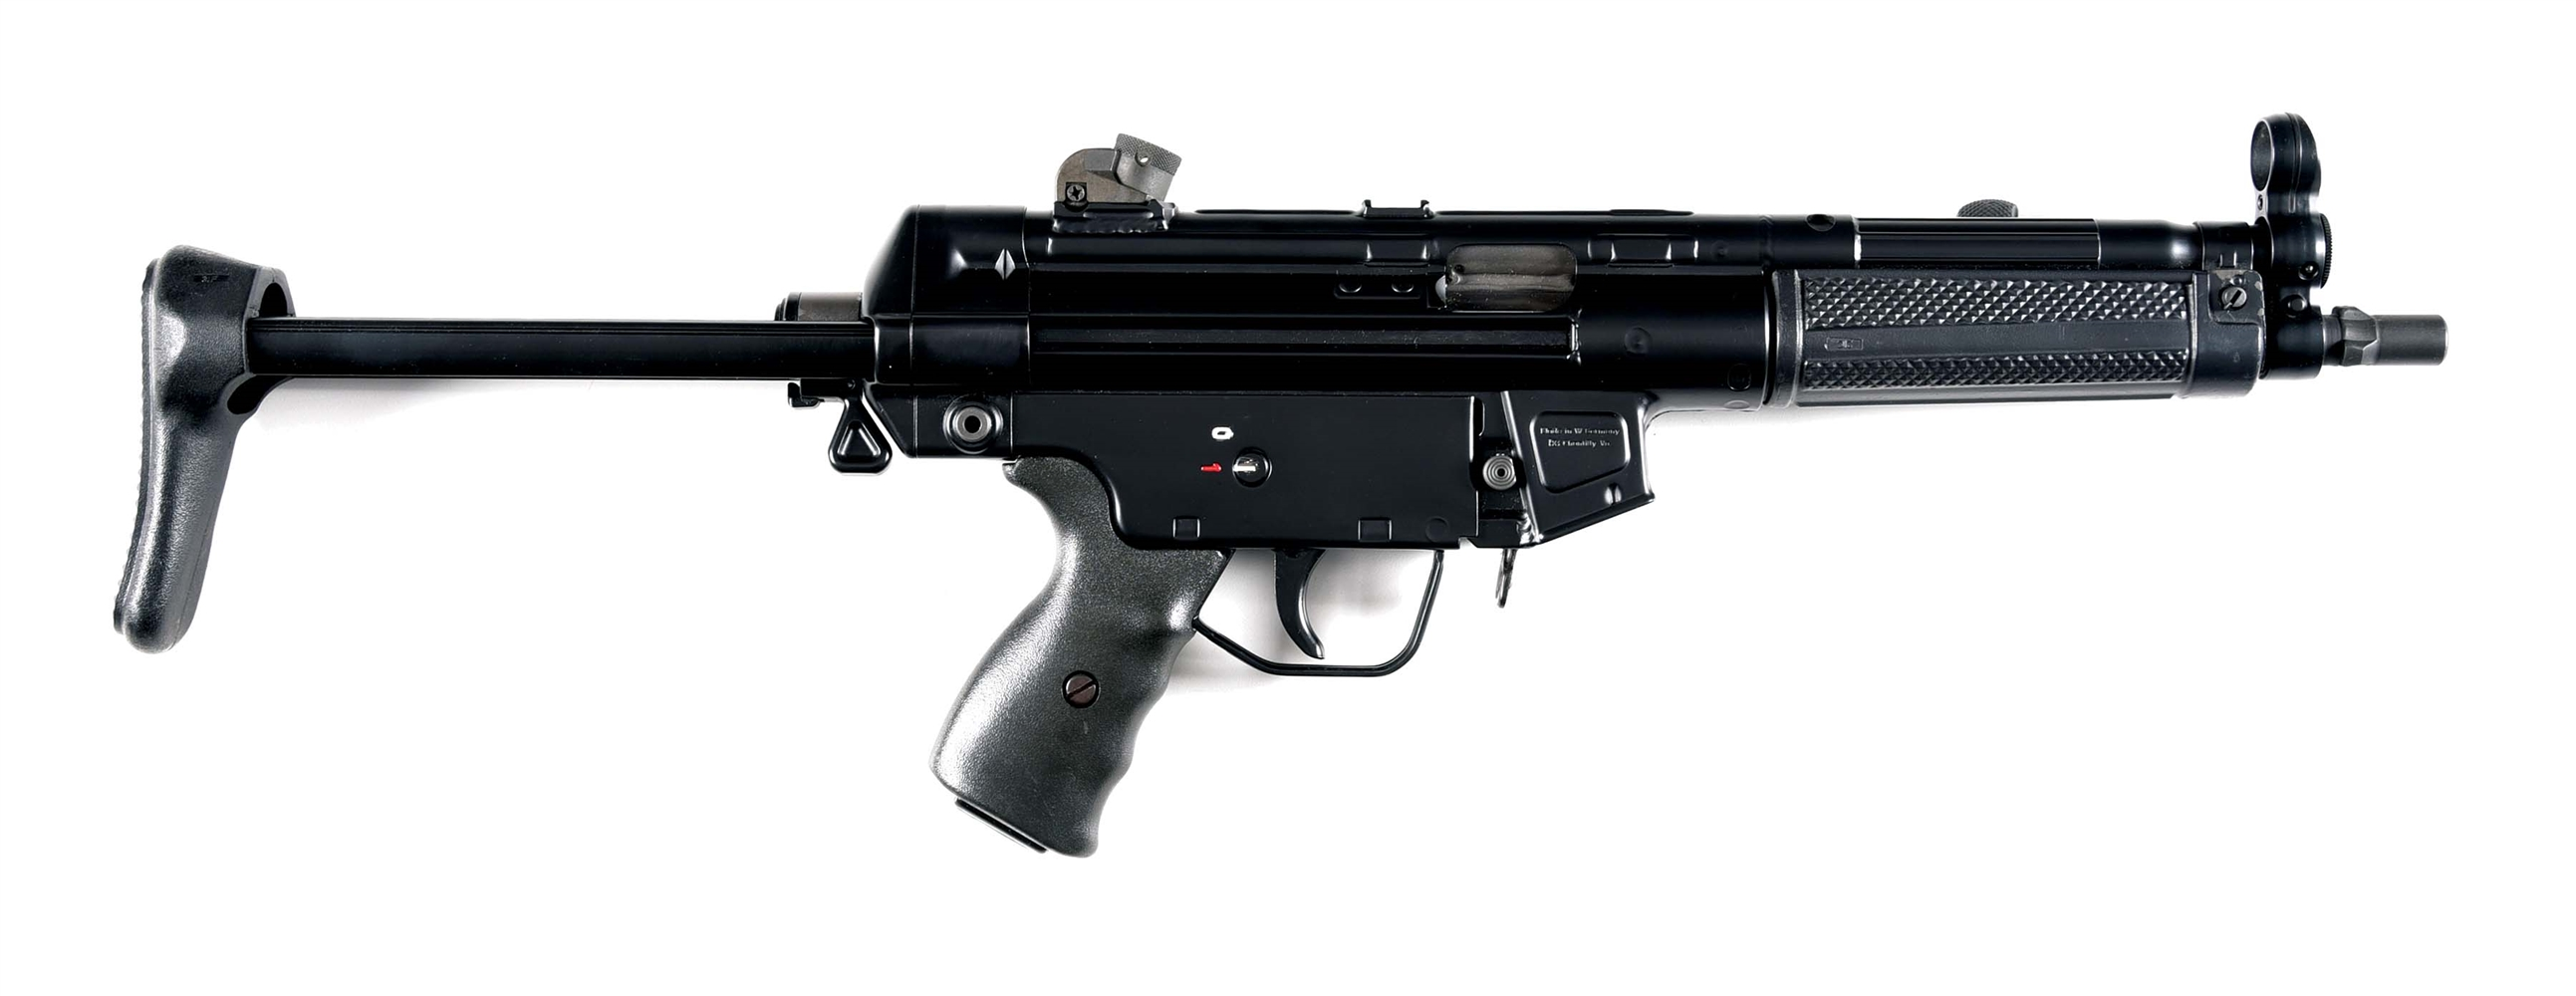 (N) CJM MACHINE HK MP5 SEMI-AUTOMATIC SHORT BARREL RIFLE (1985) (SHORT BARREL RIFLE).